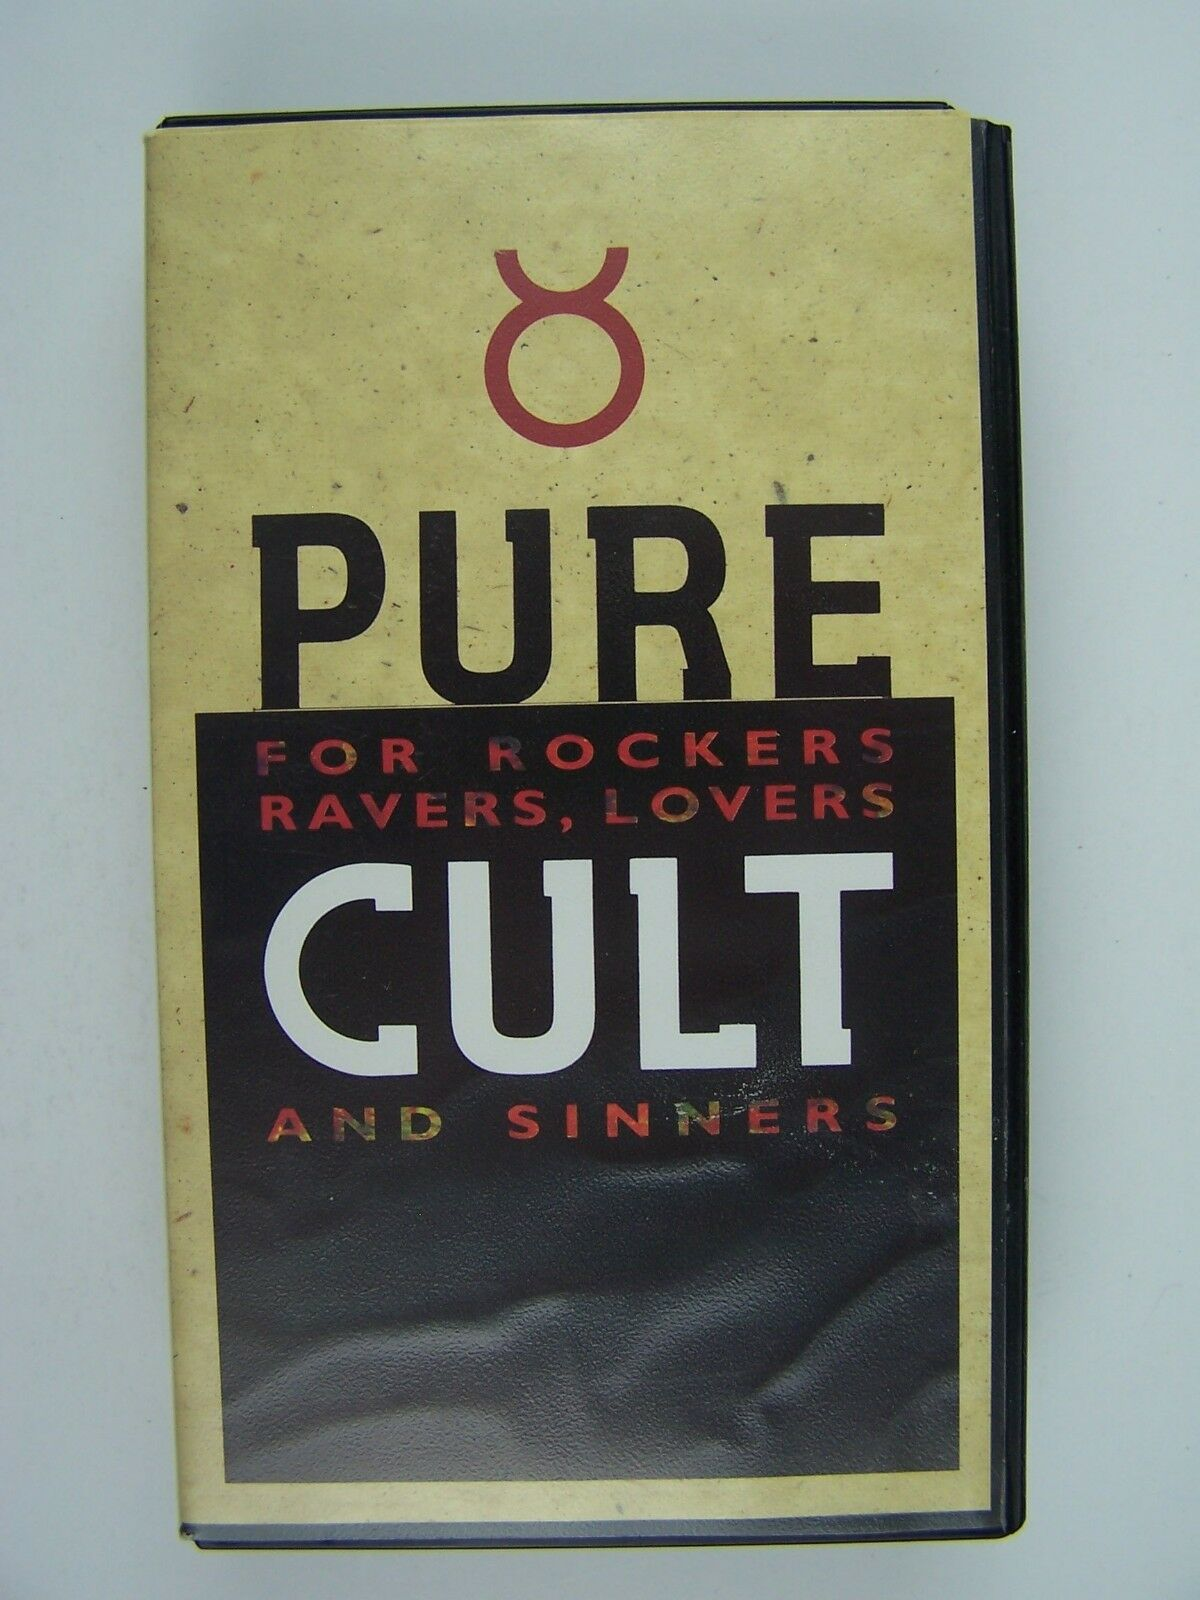 Pure Cult: For Rockers, Ravers, Lovers and Sinners VHS